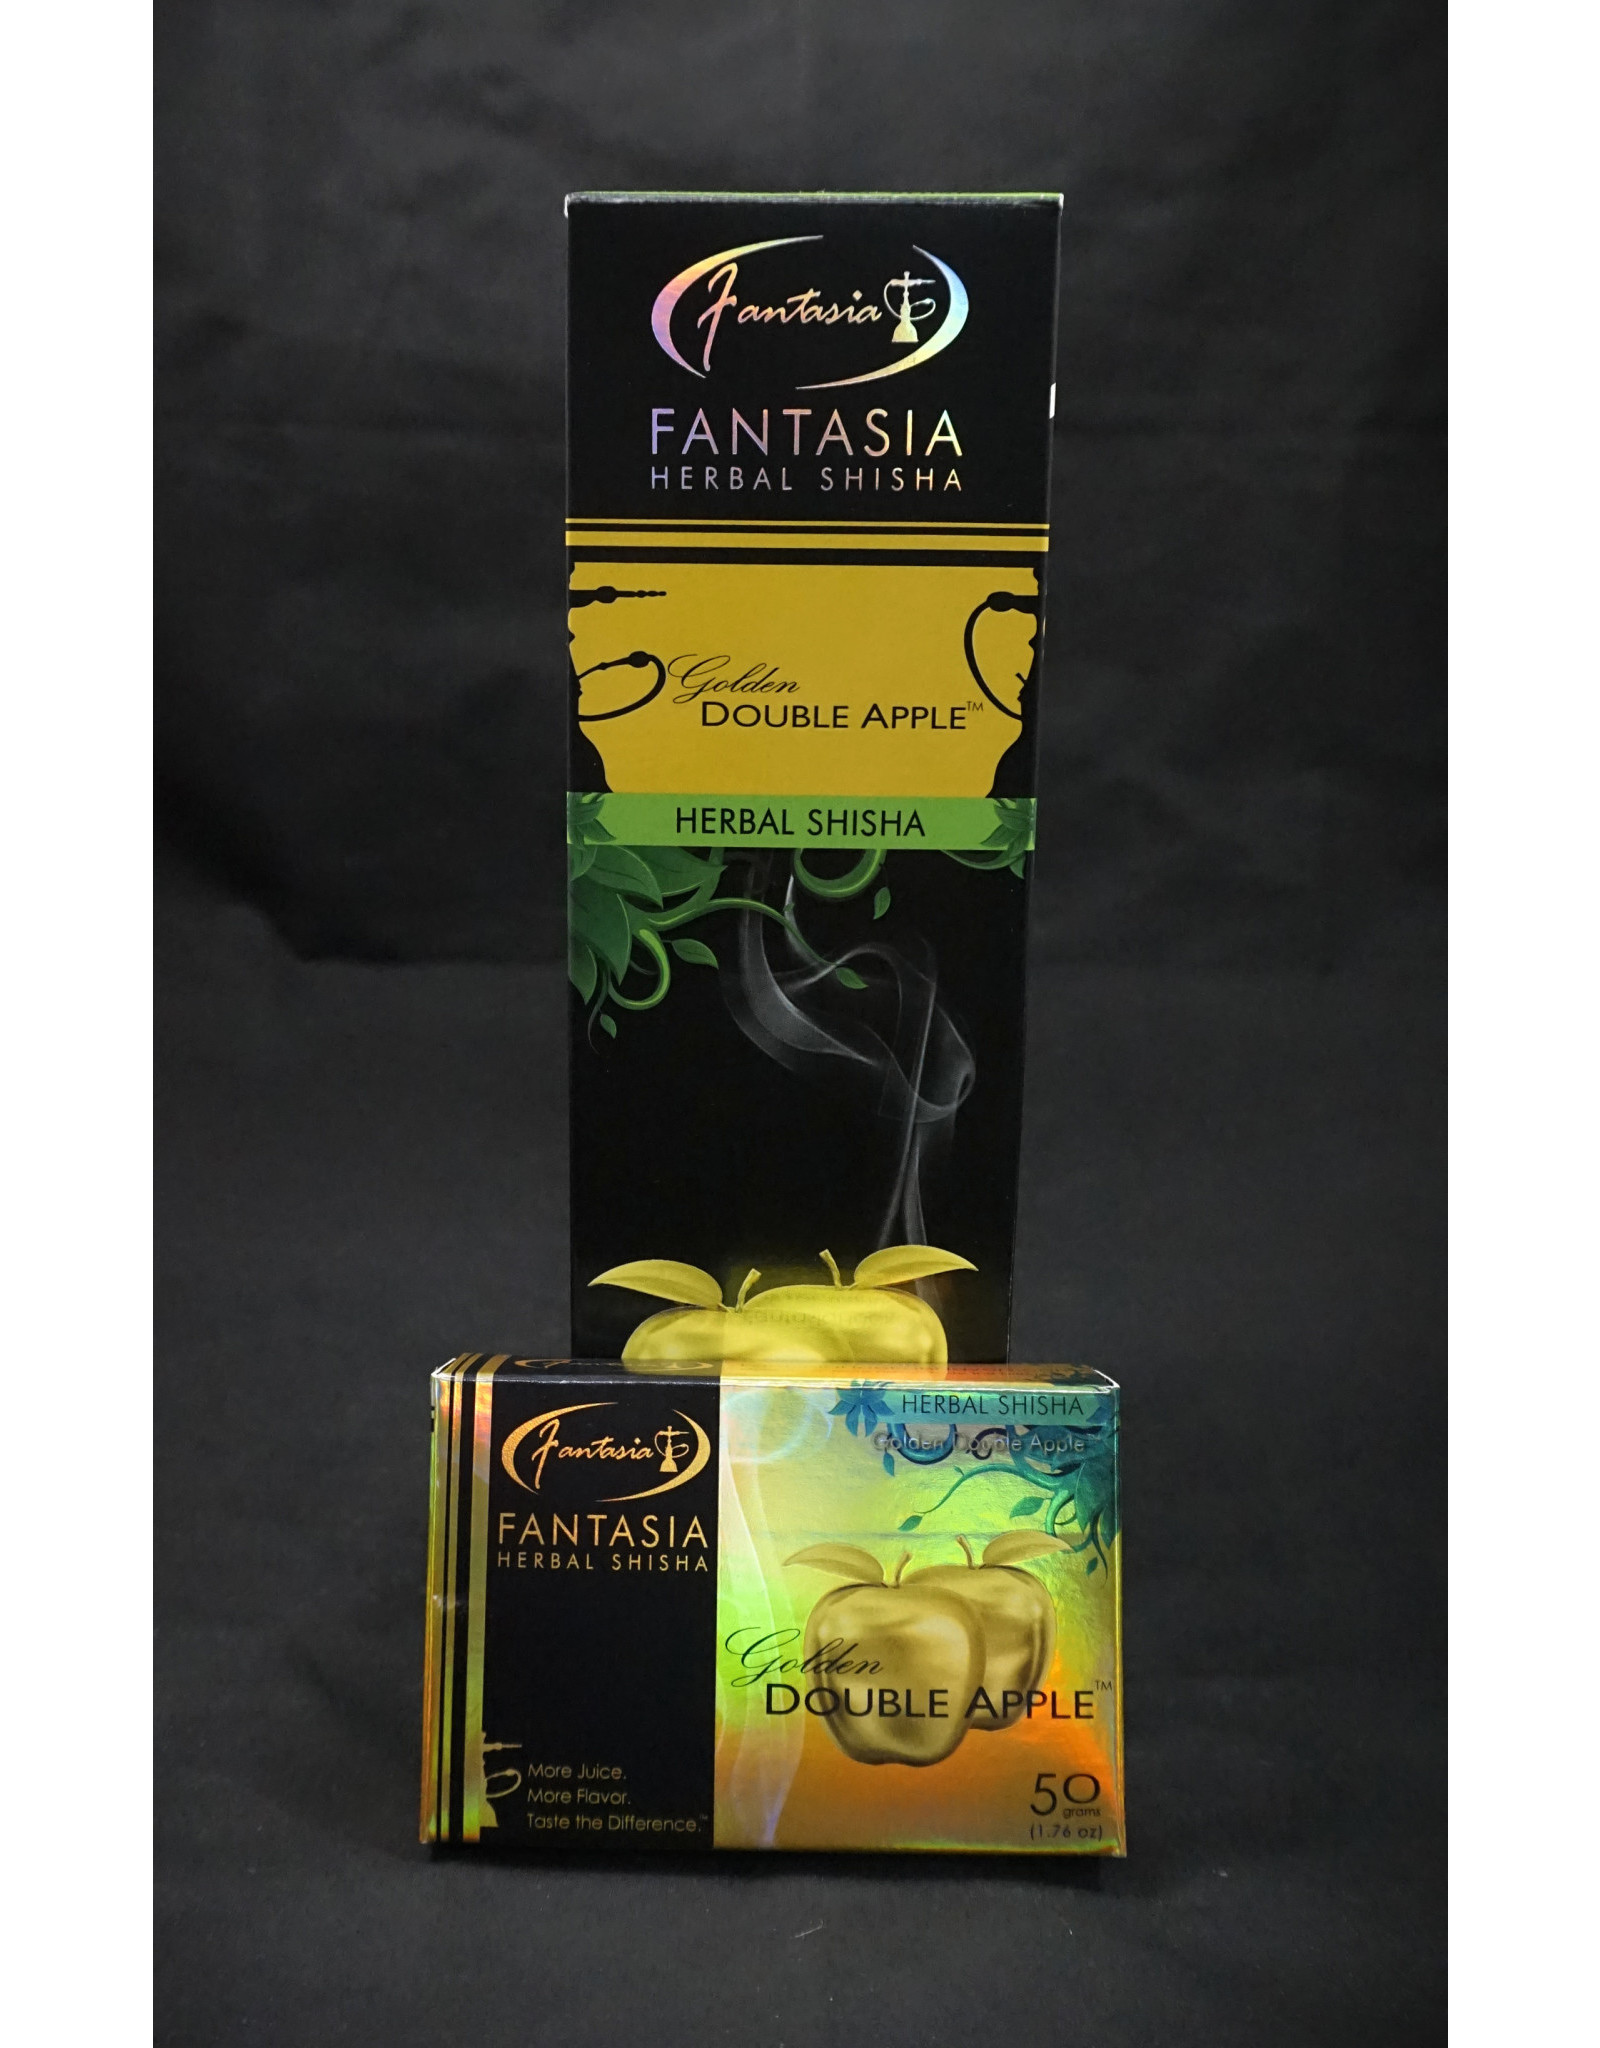 Fantasia Herbal Shisha - Golden Double Apple